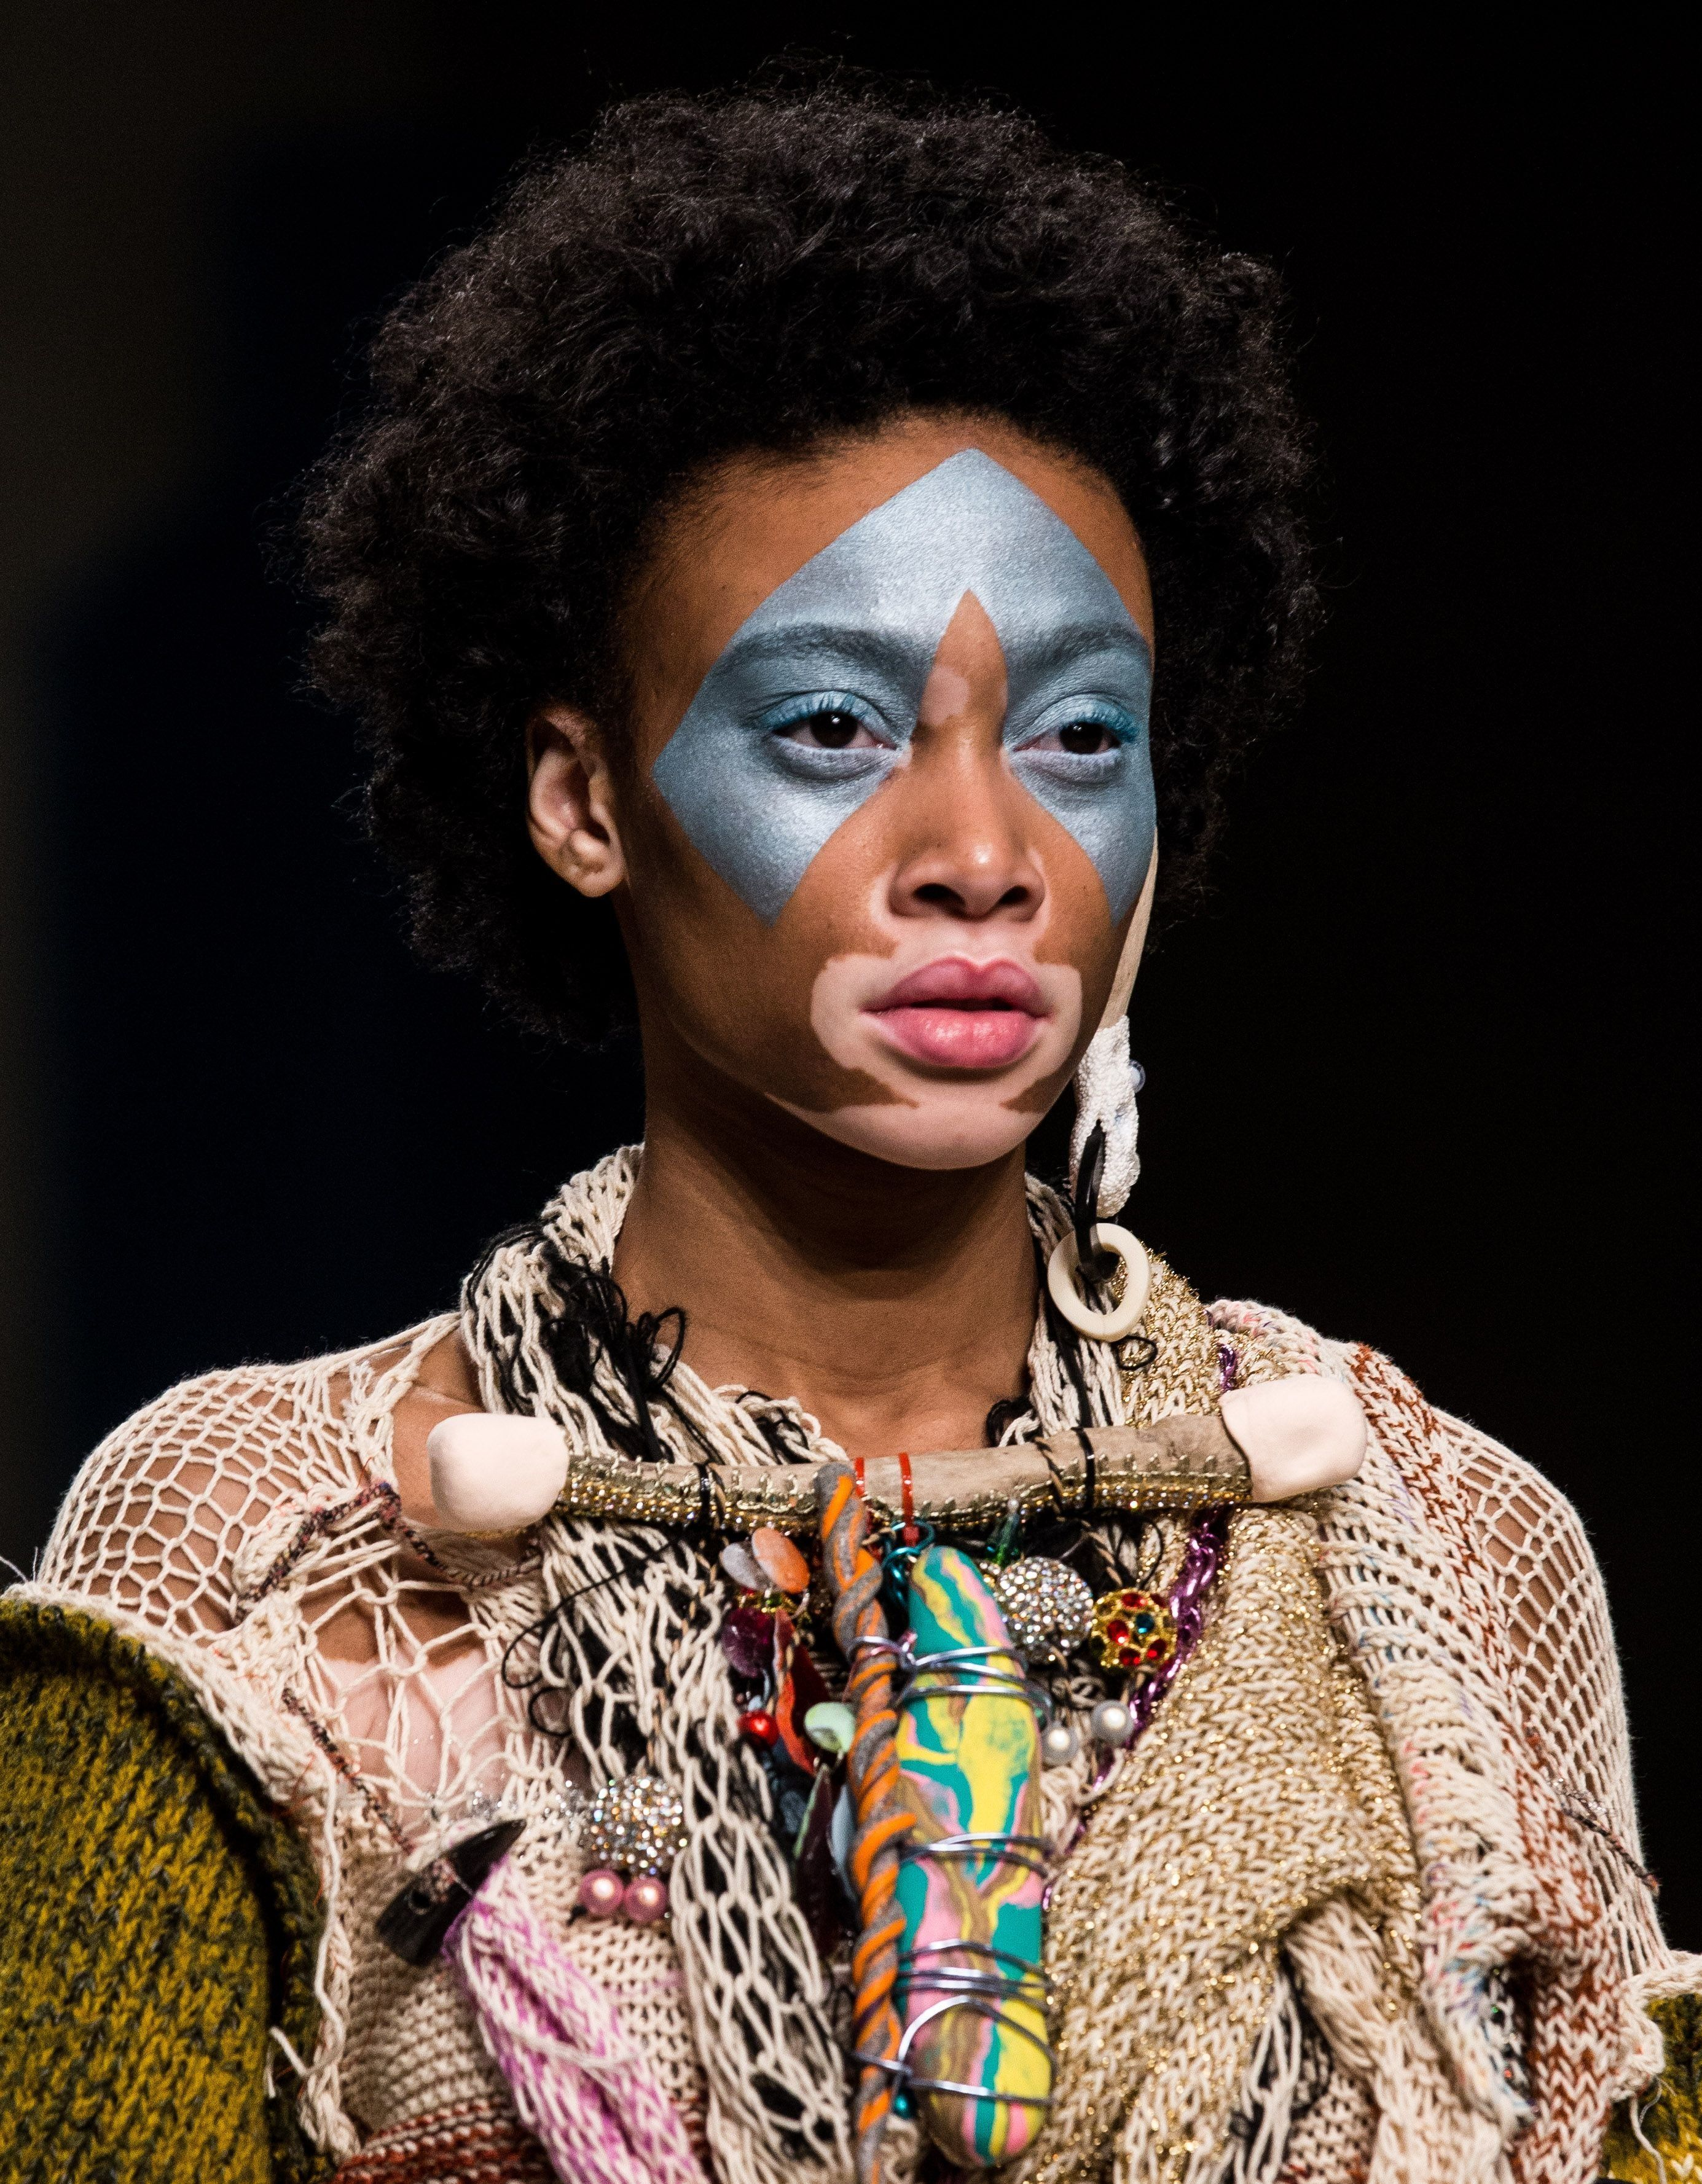 London Fashion Week 2017: Winnie Harlow Was The Perfect Choice To Lead Matty Bovan's Divine AW17